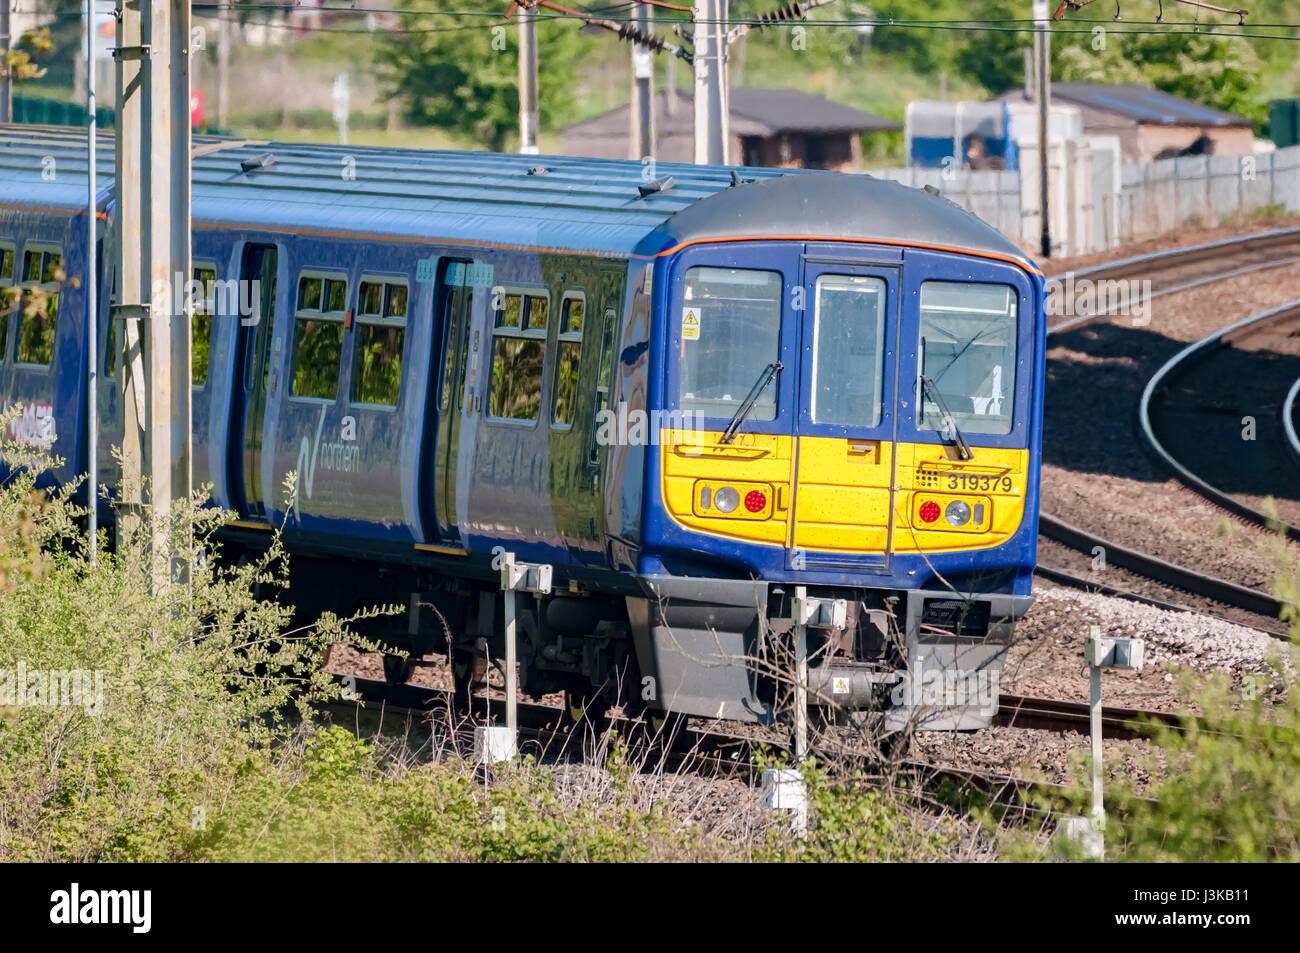 Northern Rail Class 31 electric multiple unit passenger train at Winwick junction. - Stock Image